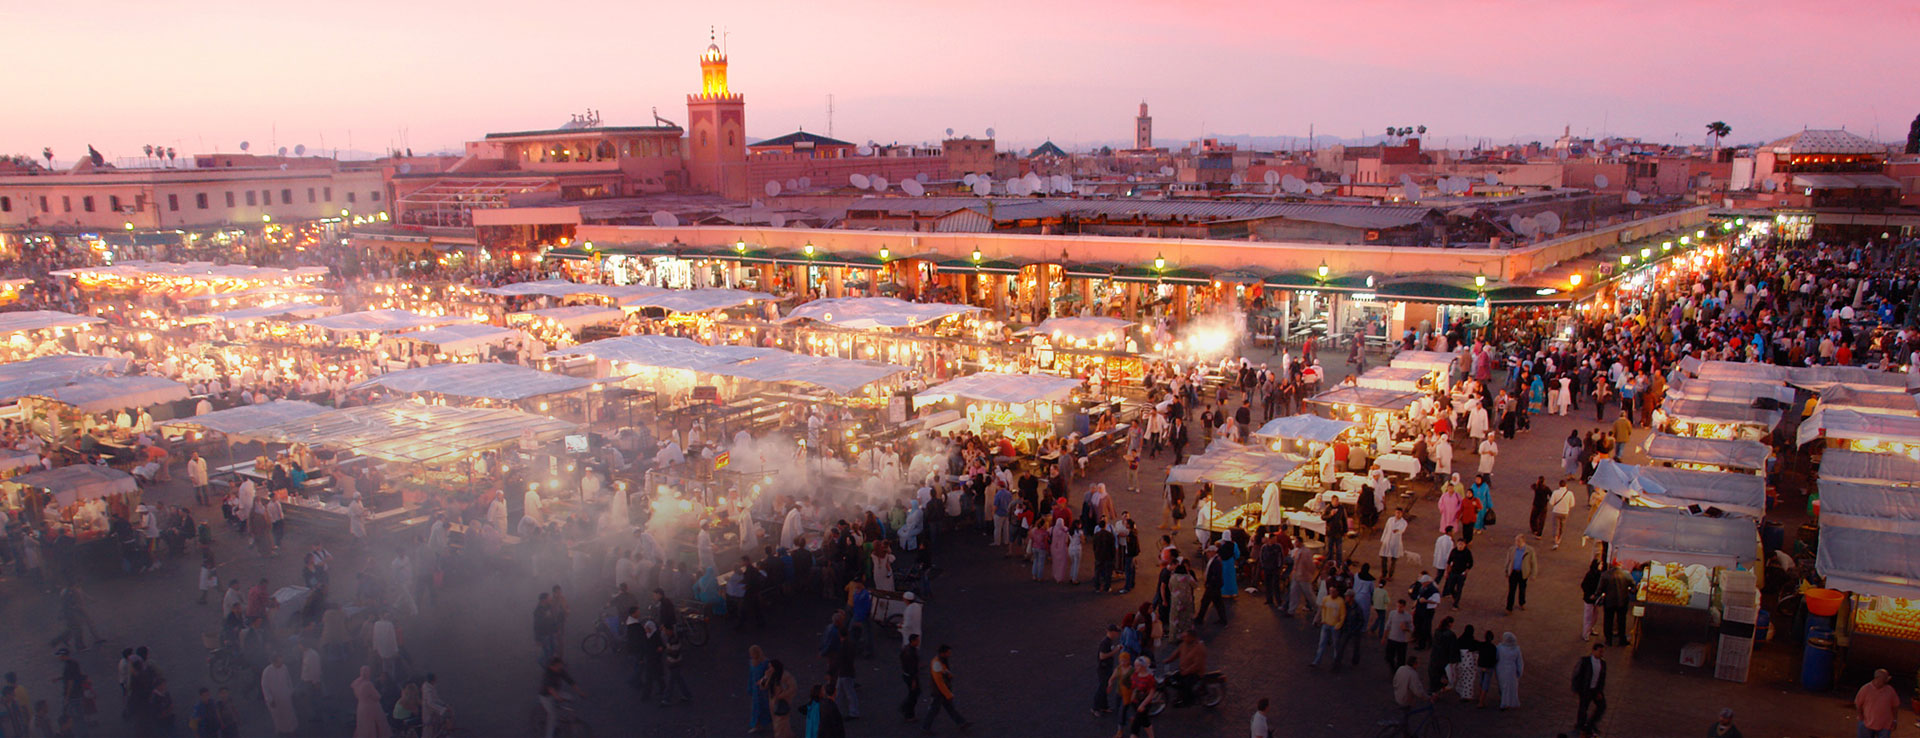 Marrakesh - city of the Kingdom of Morocco